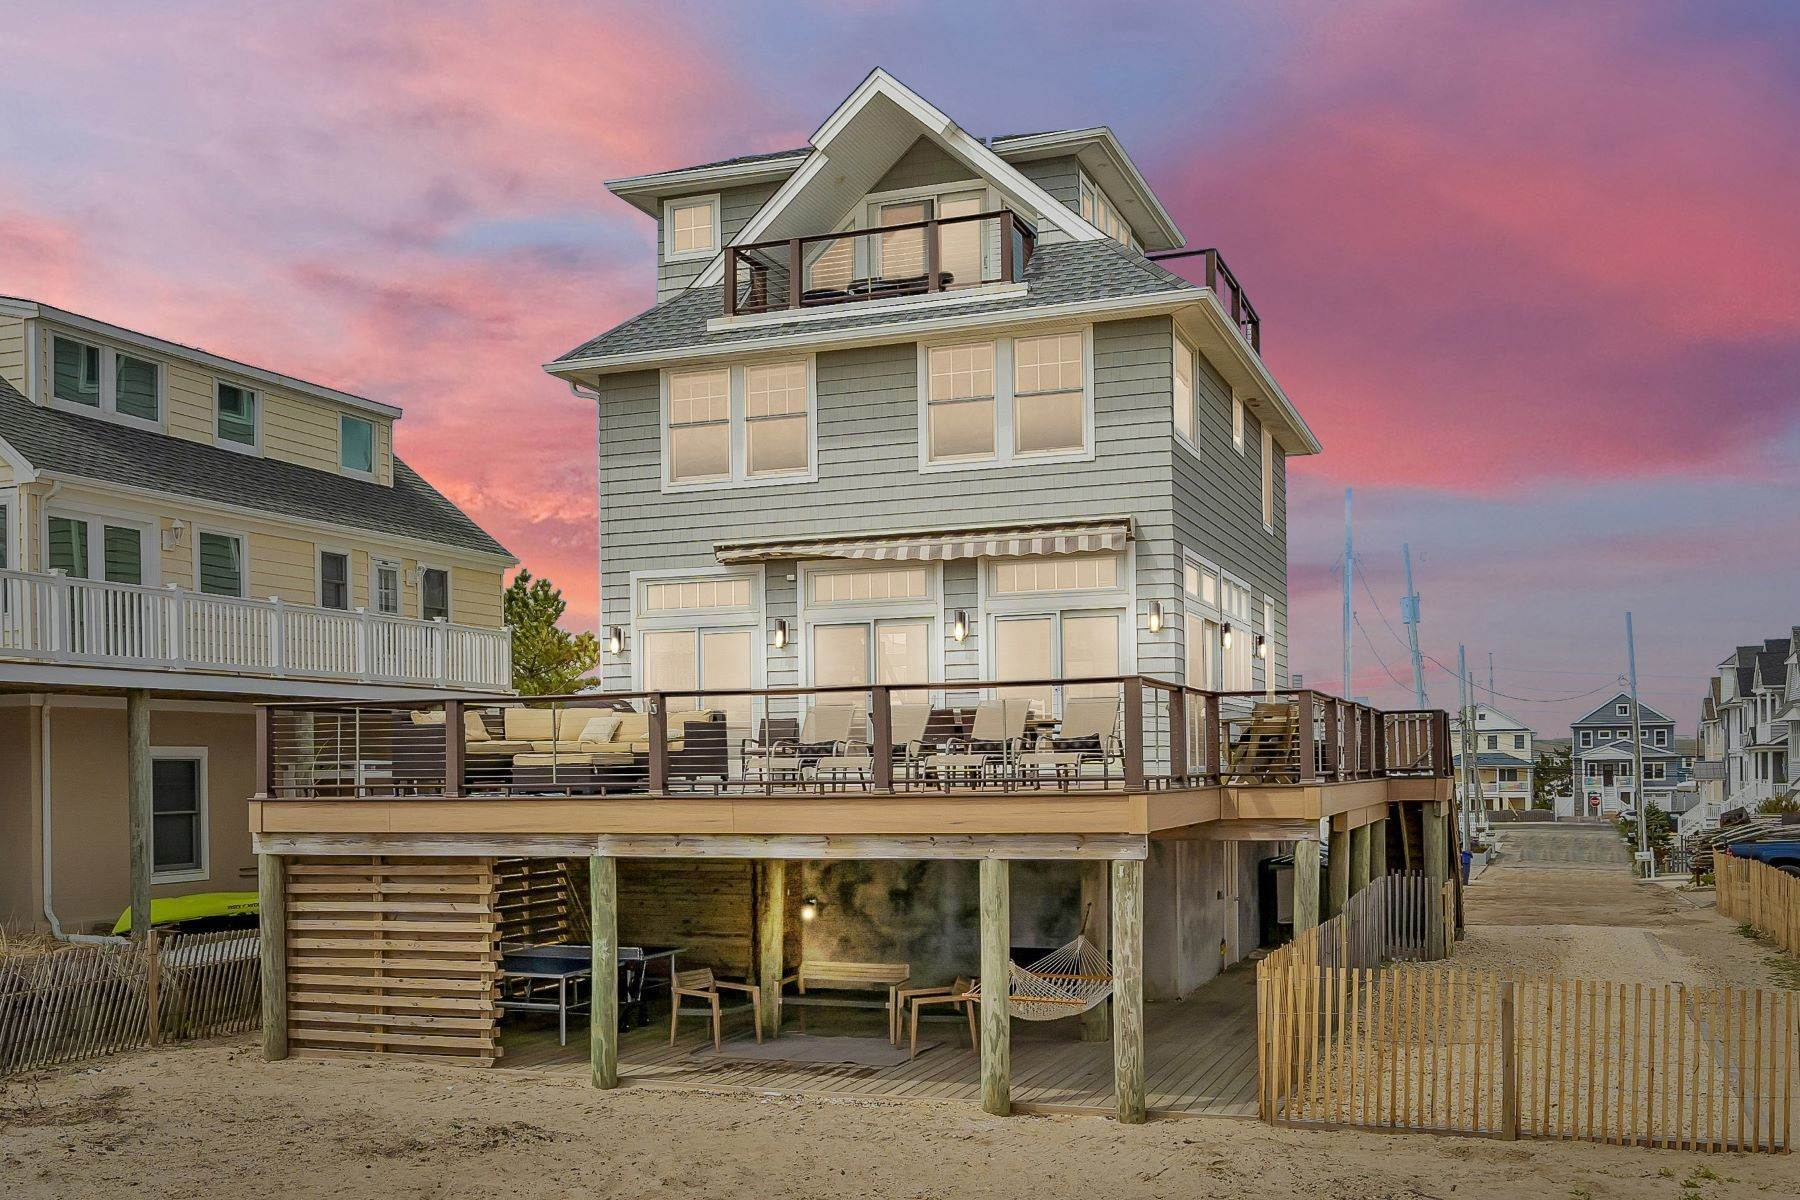 Single Family Homes for Sale at Truly Spectacular Oceanfront Home Is Exquisitely Designed 100 Lyndhurst Drive Mantoloking, New Jersey 08738 United States